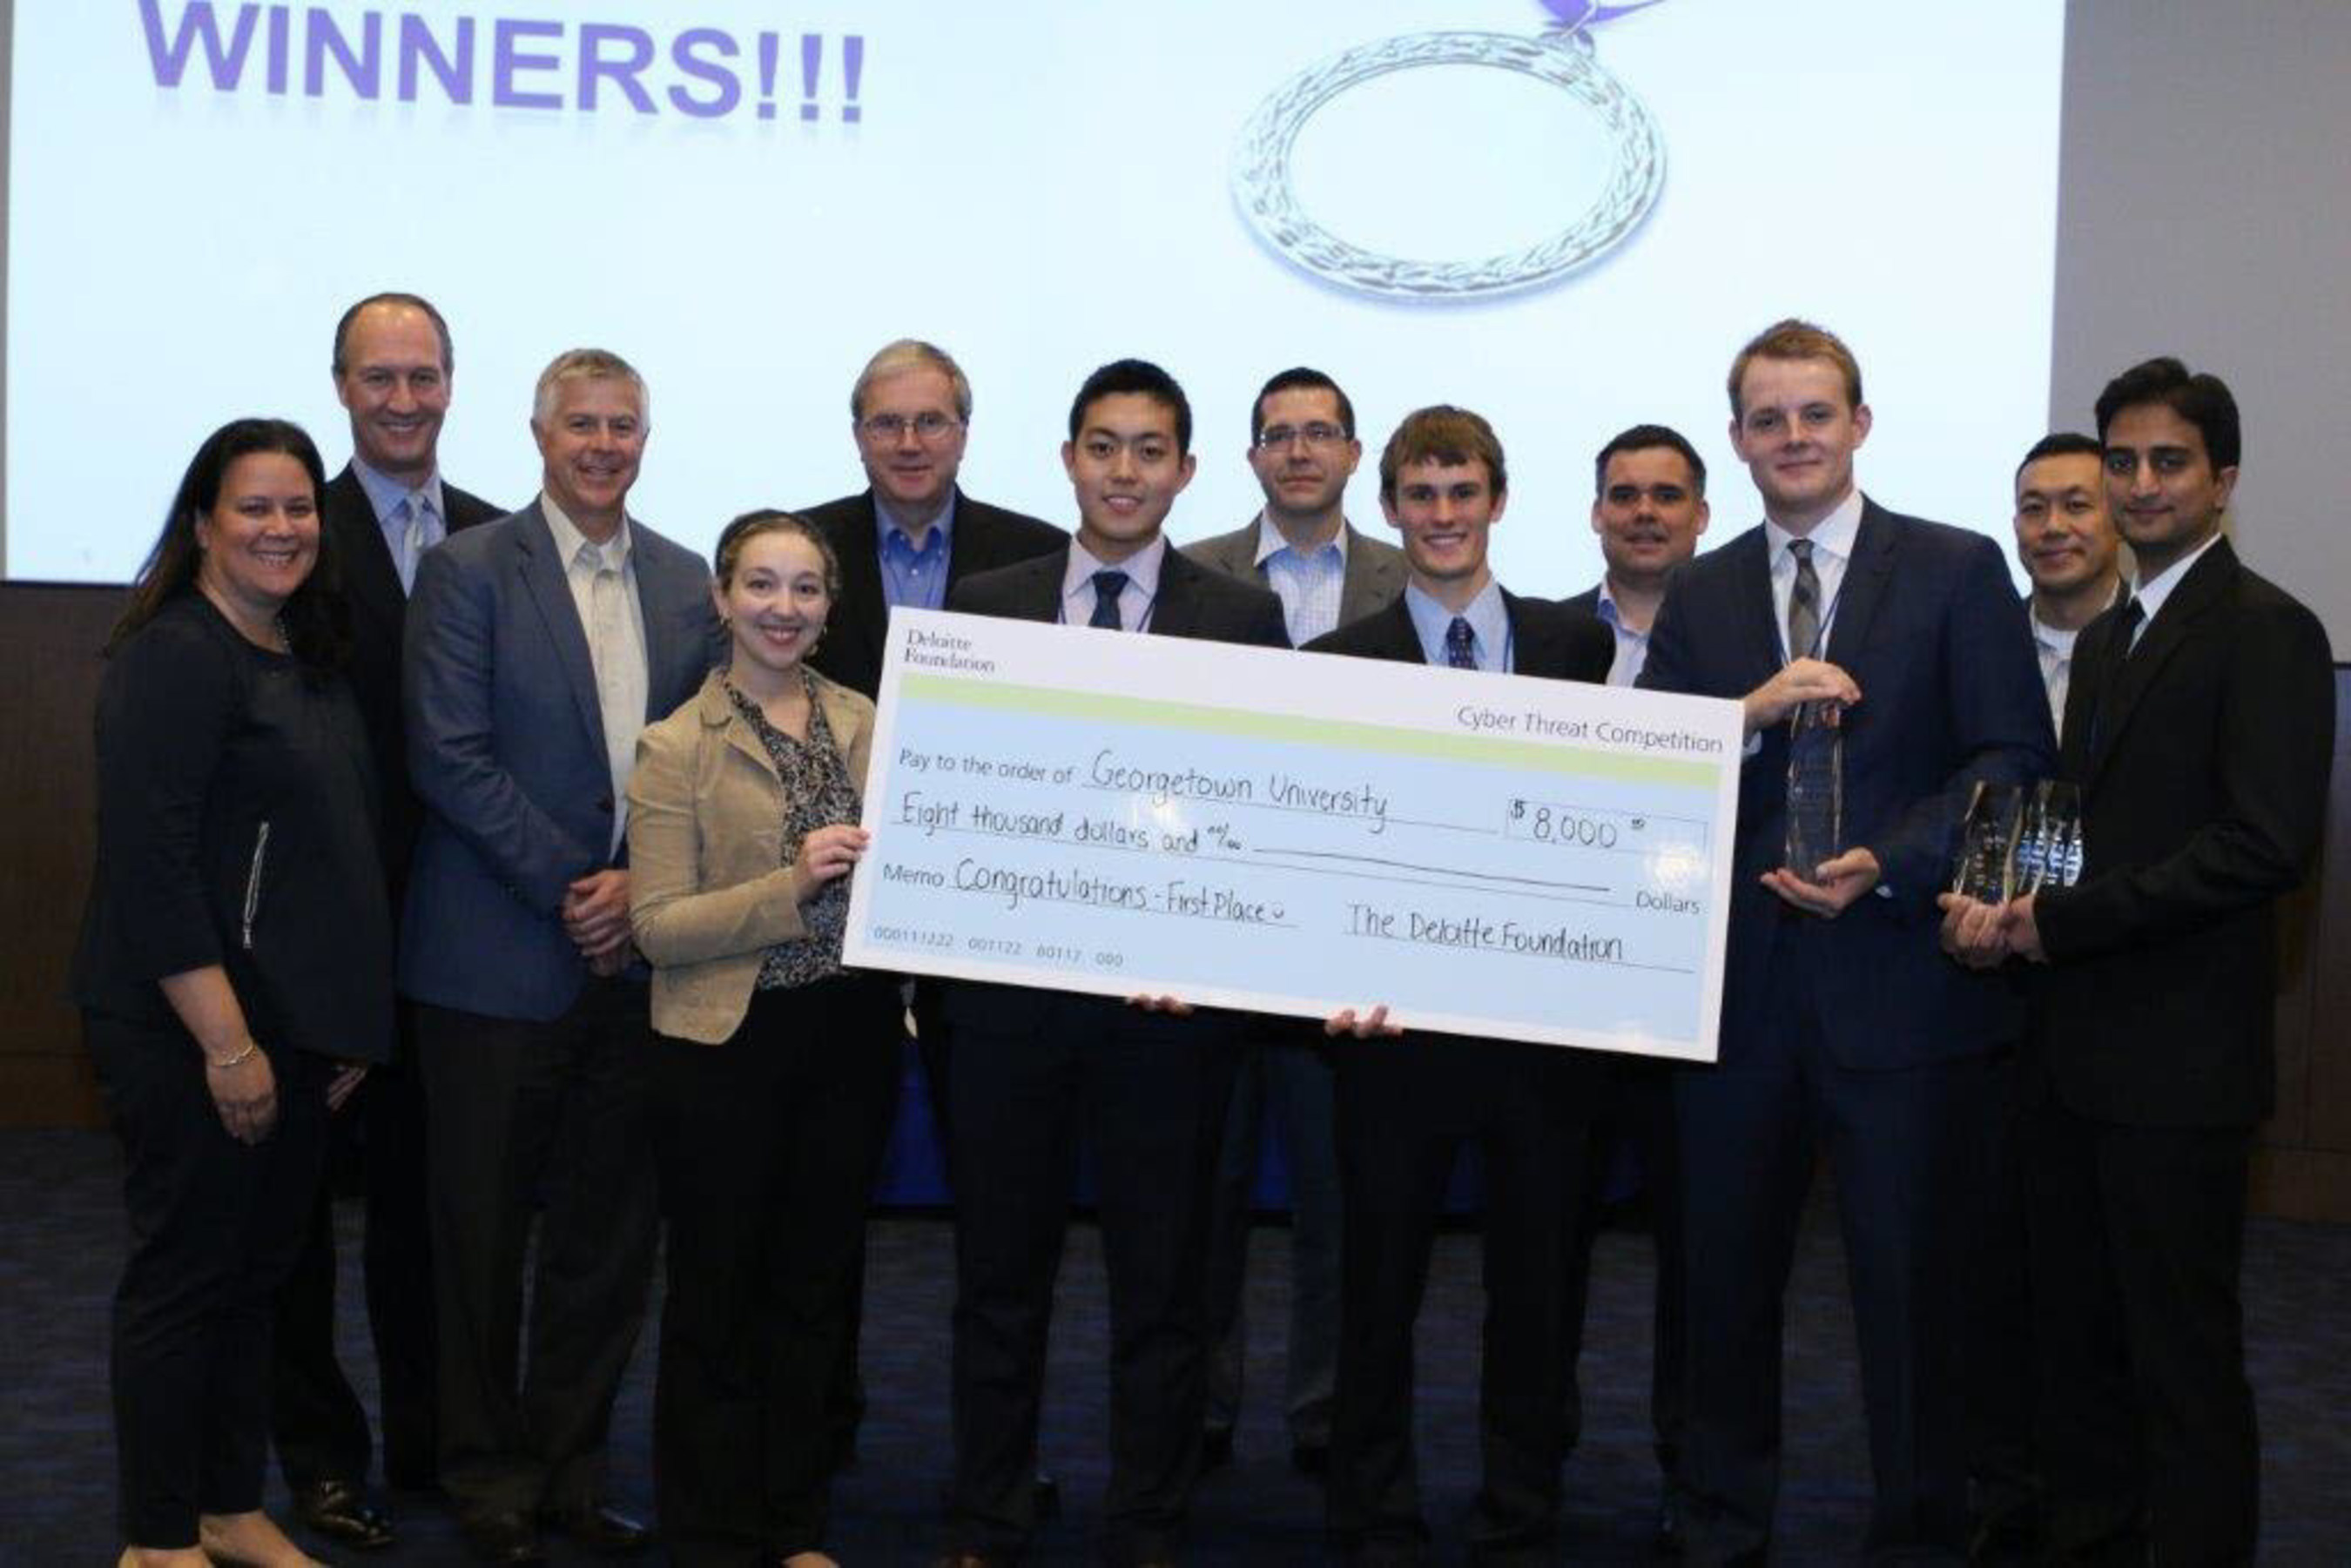 Georgetown University Wins Deloitte Foundation Cyber Threat Competition